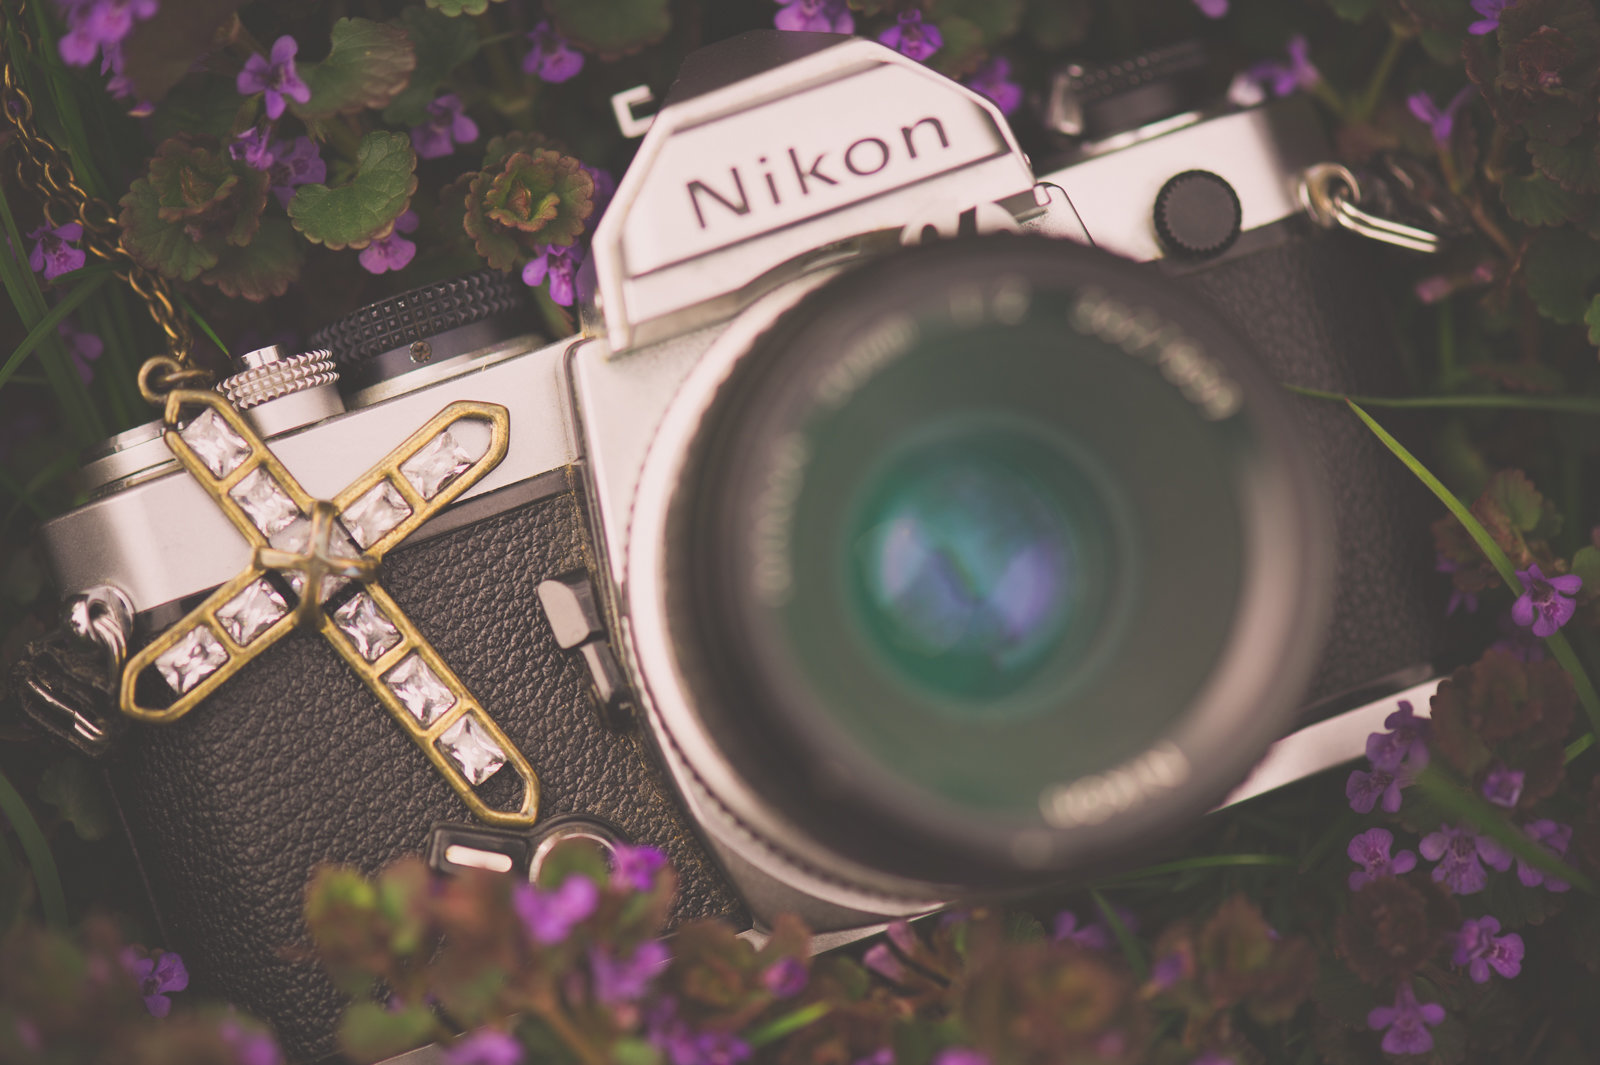 nikon film camera in purple flowers with cross